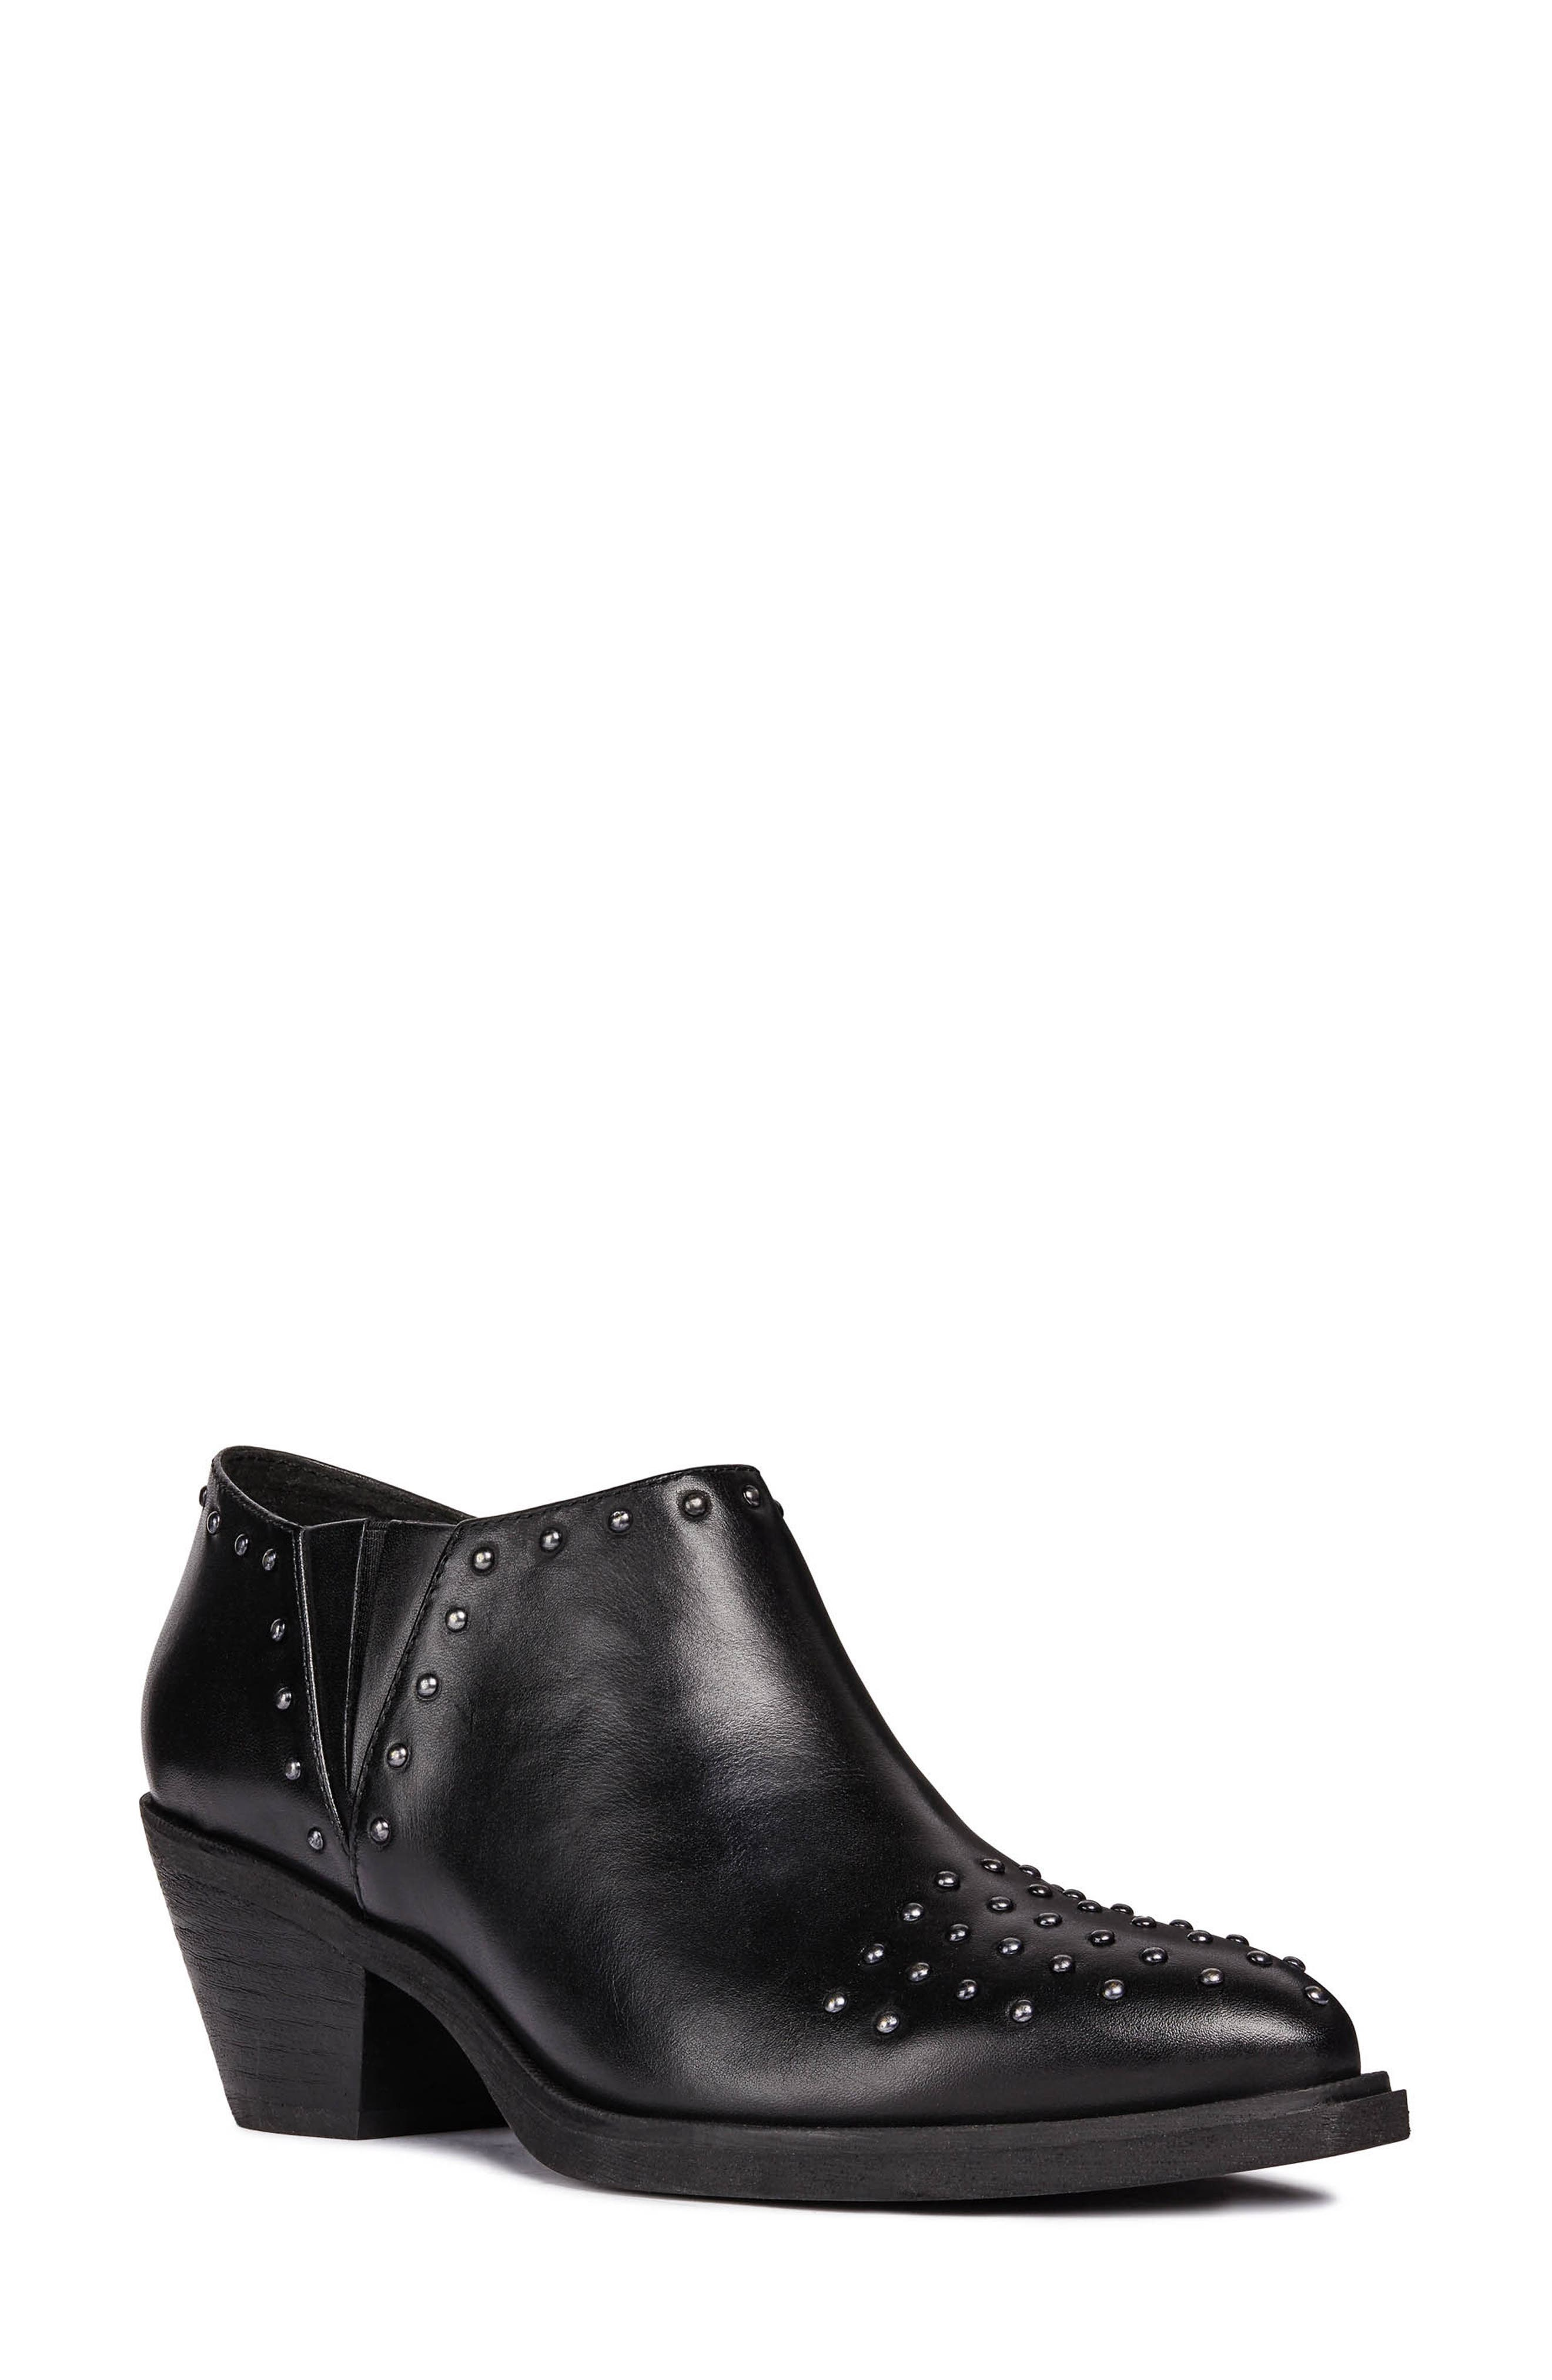 Lovai Ankle Boot,                         Main,                         color, BLACK LEATHER